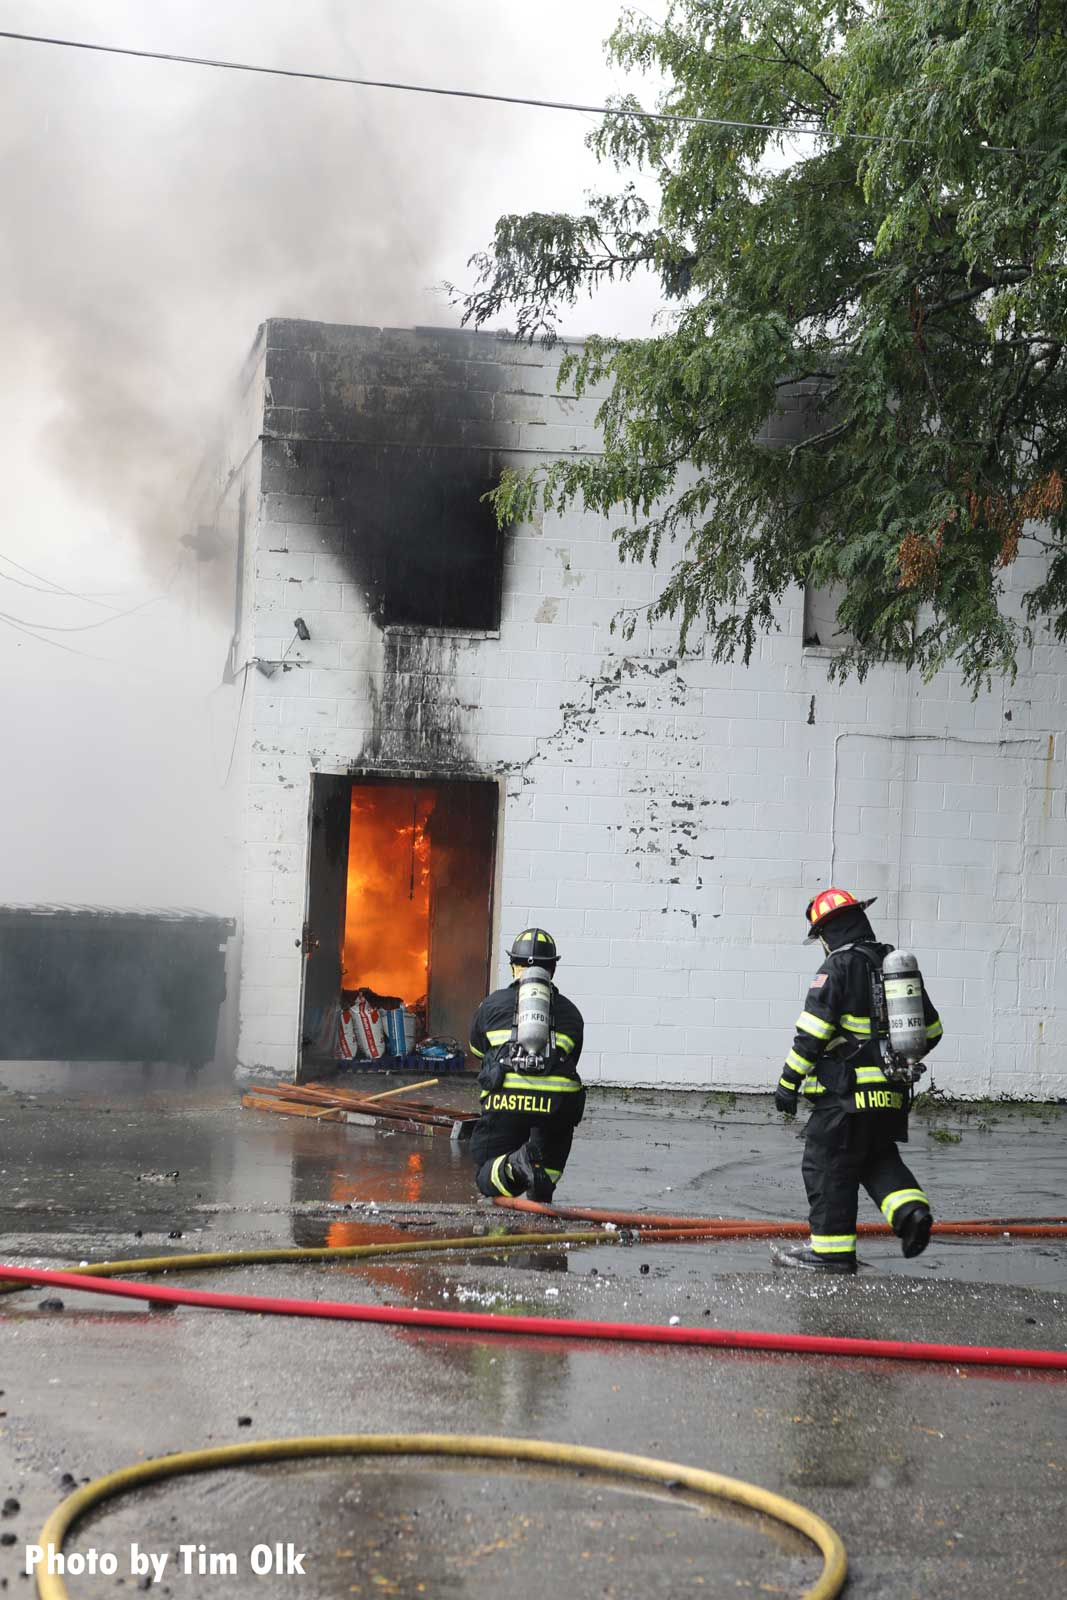 Kenosha firefighters control flames in the wake of riots in the city